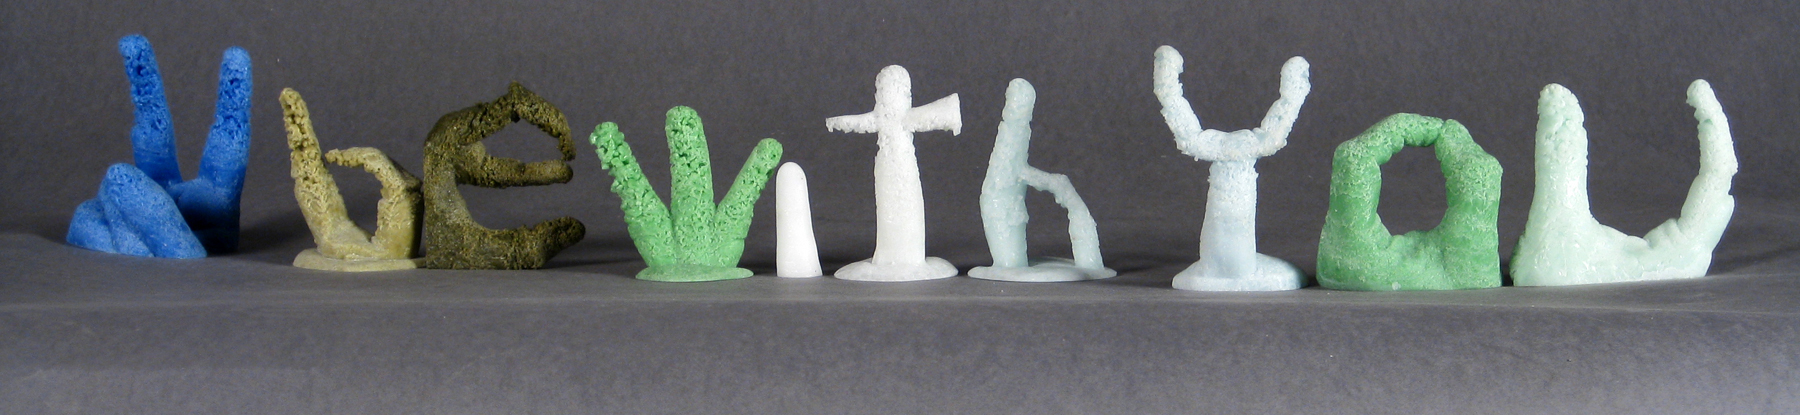 Old Ideas  2014  Kiln cast bottle glass  Dimensions variable